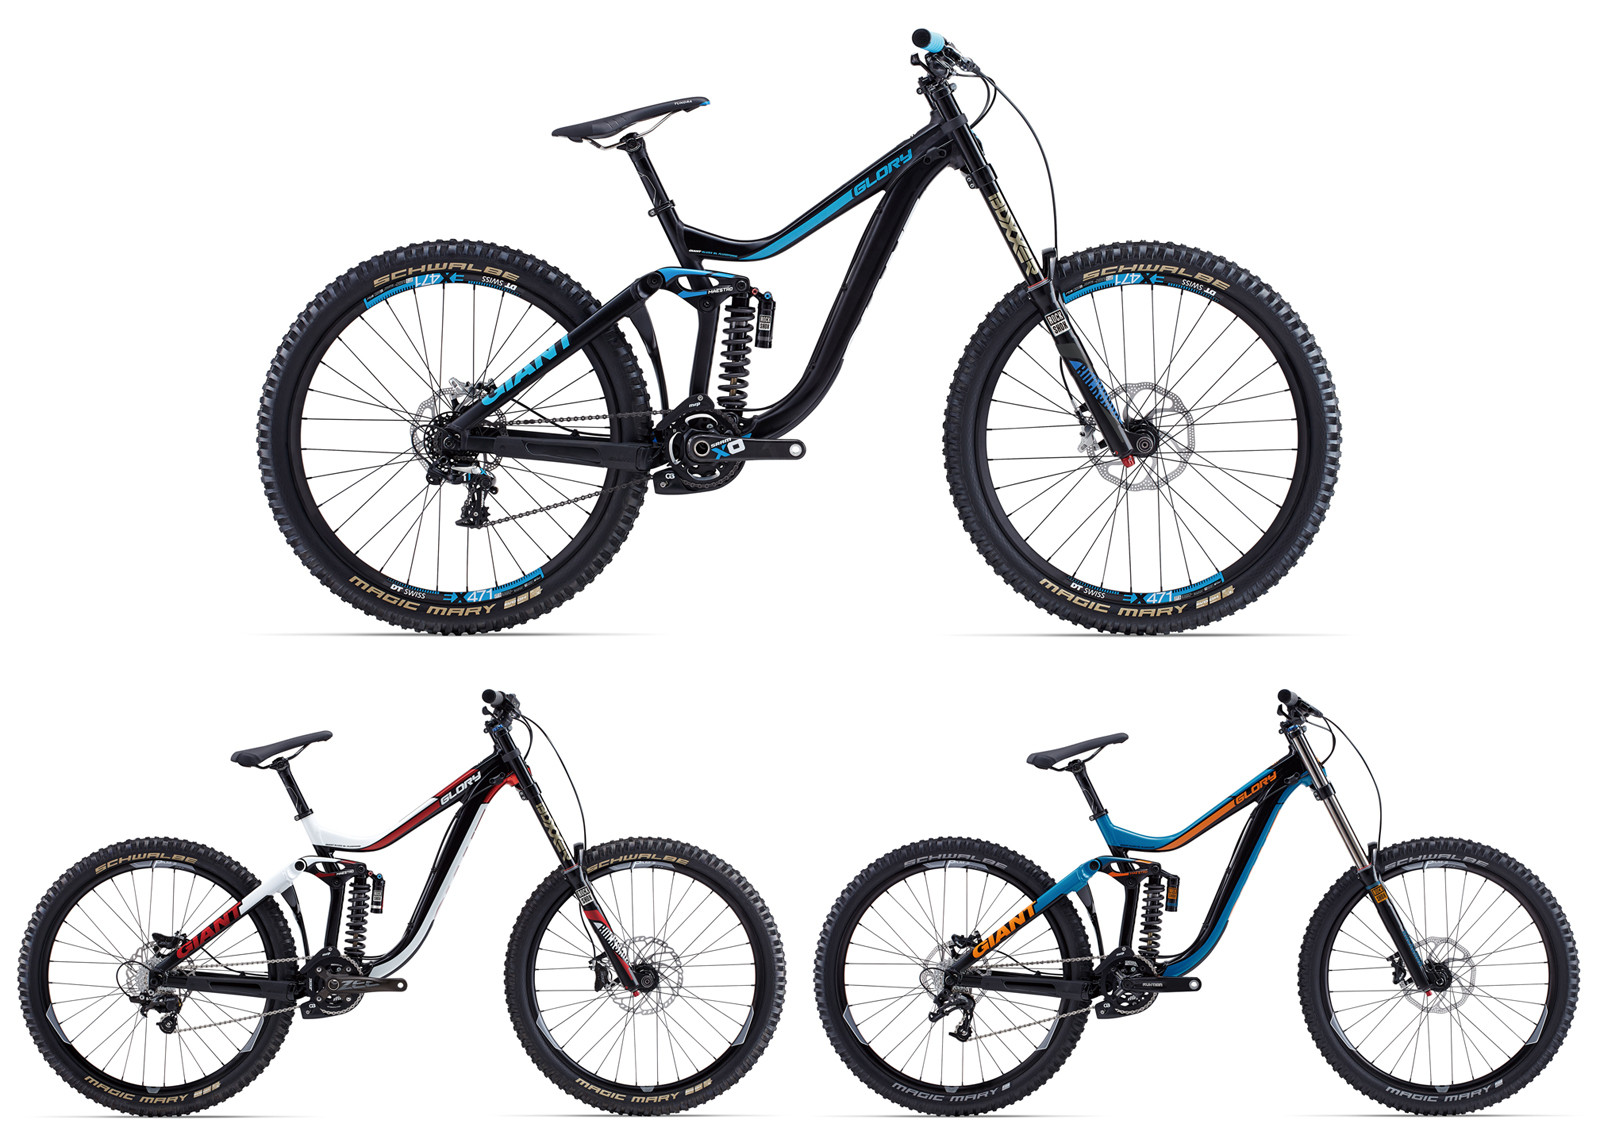 Giant will sell two of three Glory 27.5 models in the USA - the decked out  Glory 27.5 0 at $6,600 and Glory 27.5 2 with a budget build at $3,000.